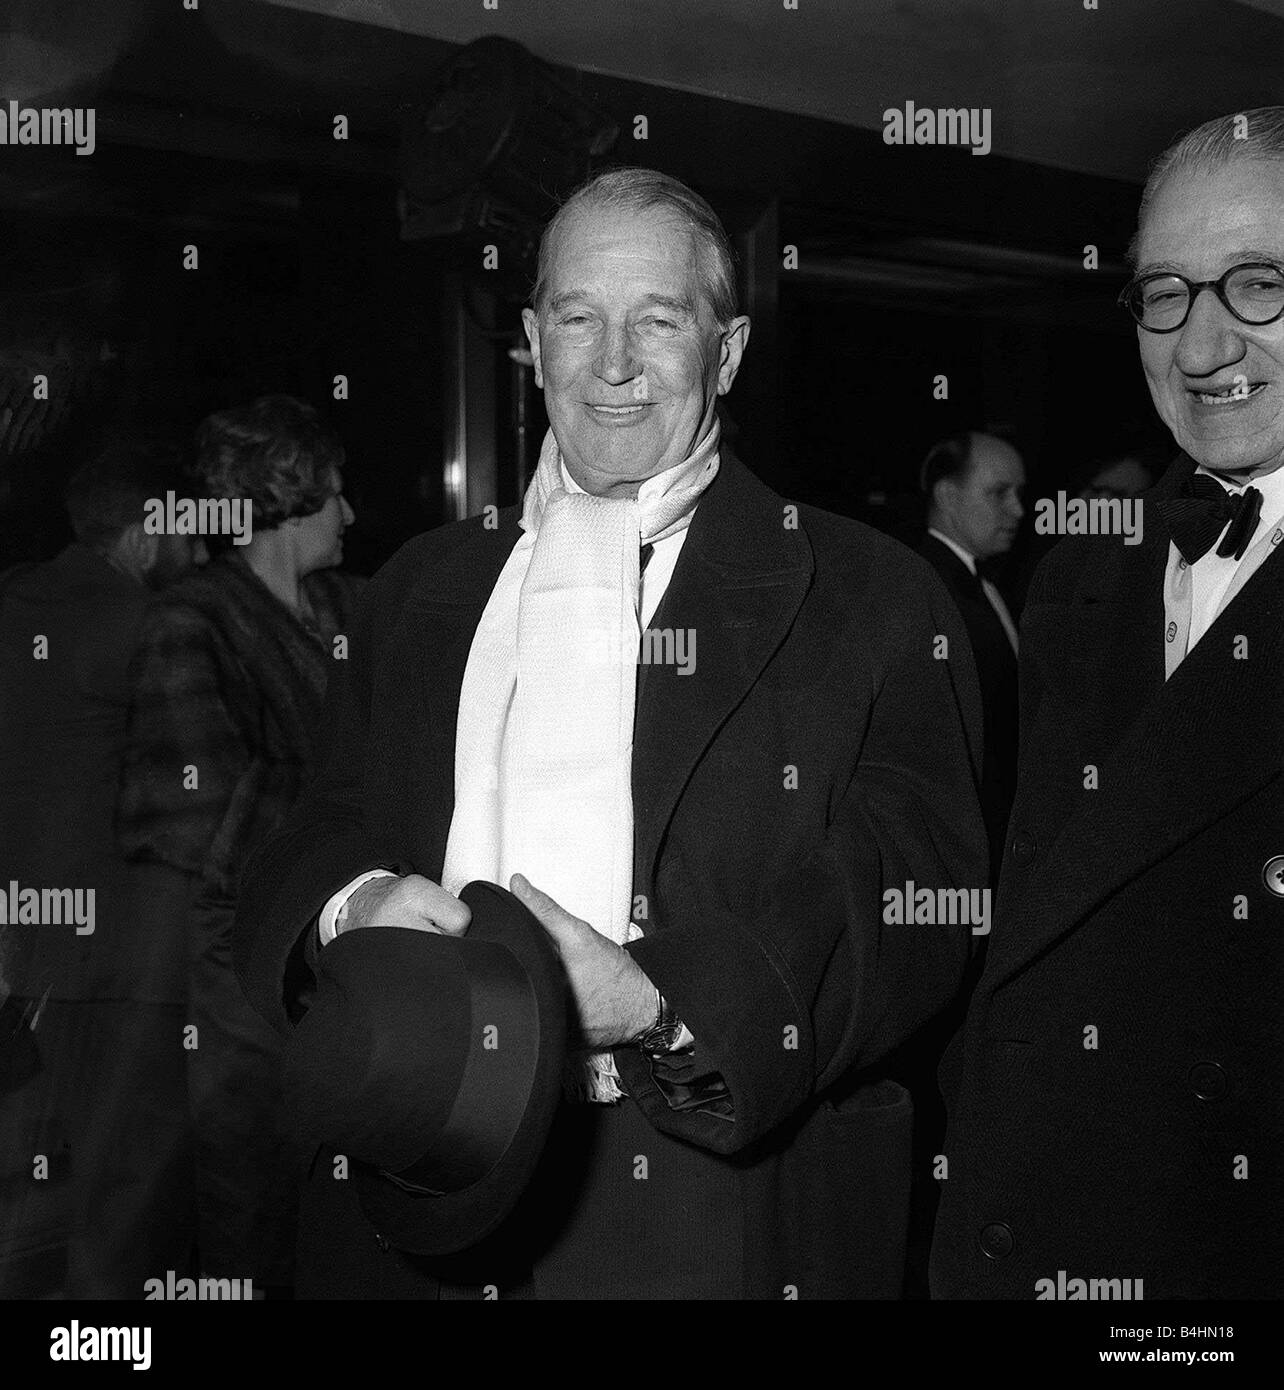 Maurice Chevalier Actor Feb 1959 arrives at premiere of the new musical film GiGi at the new Columbia Cinema Shaftesbury - Stock Image